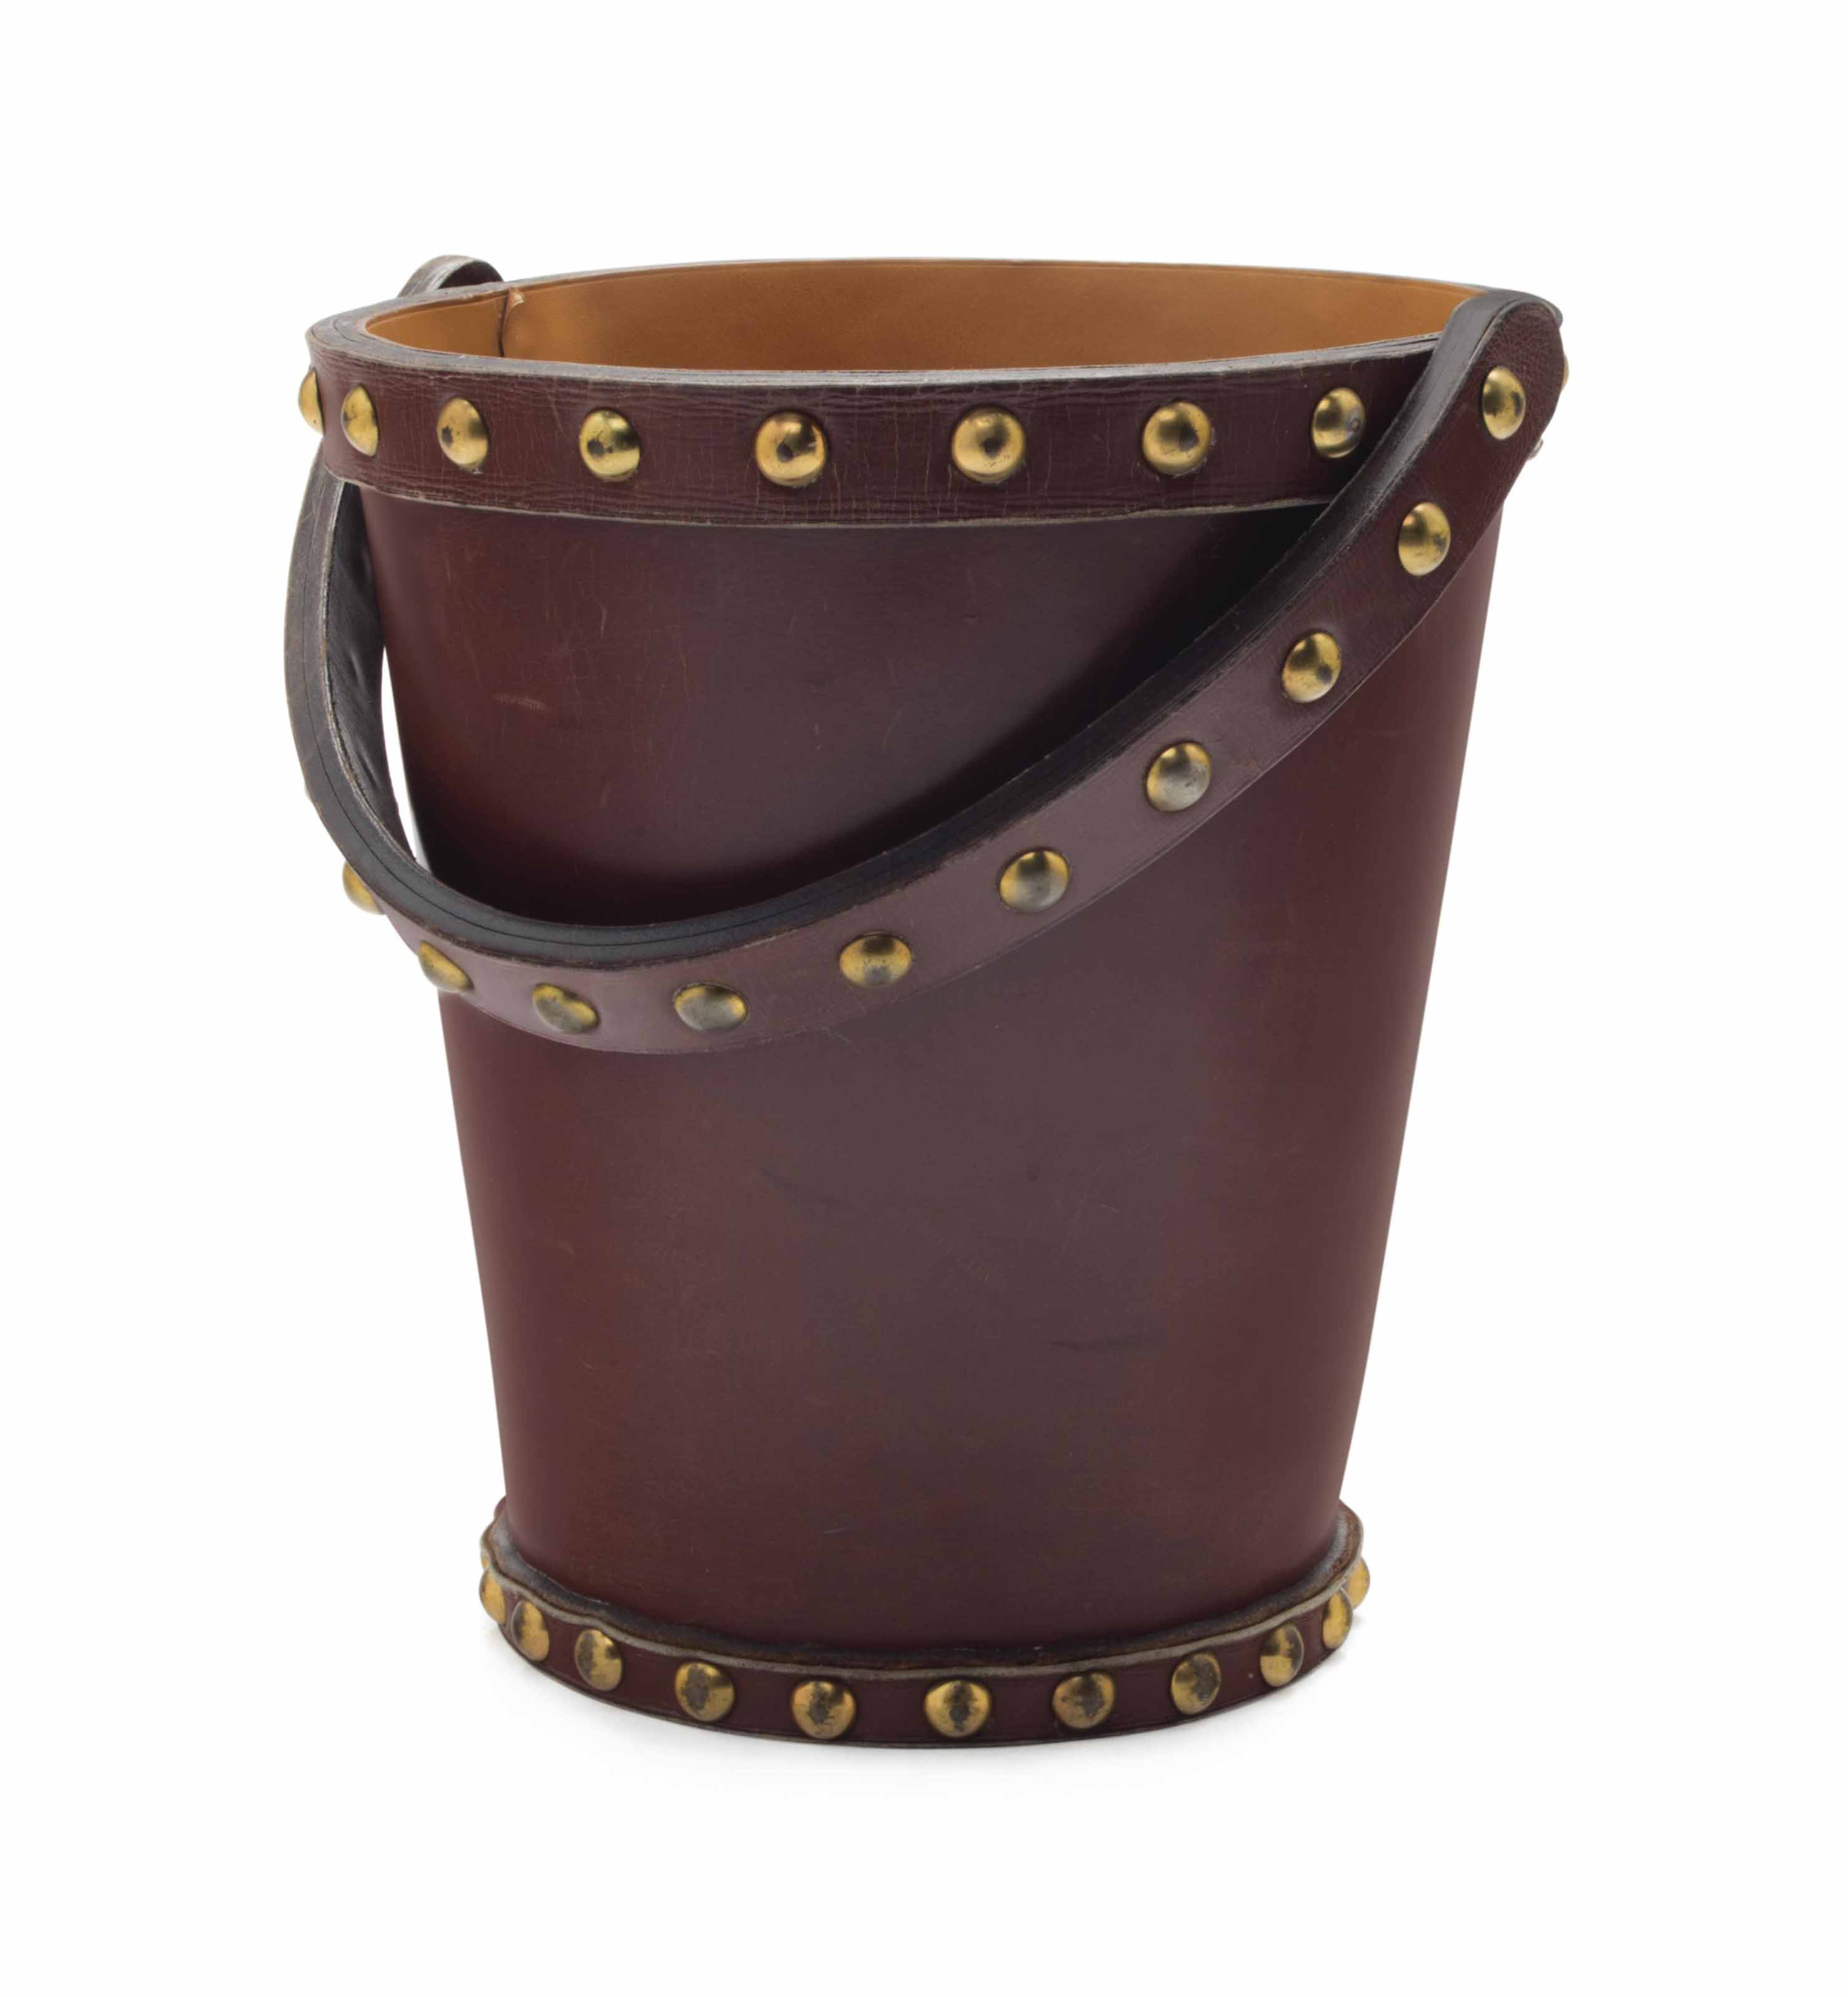 A FRENCH BRASS AND LEATHER WAS